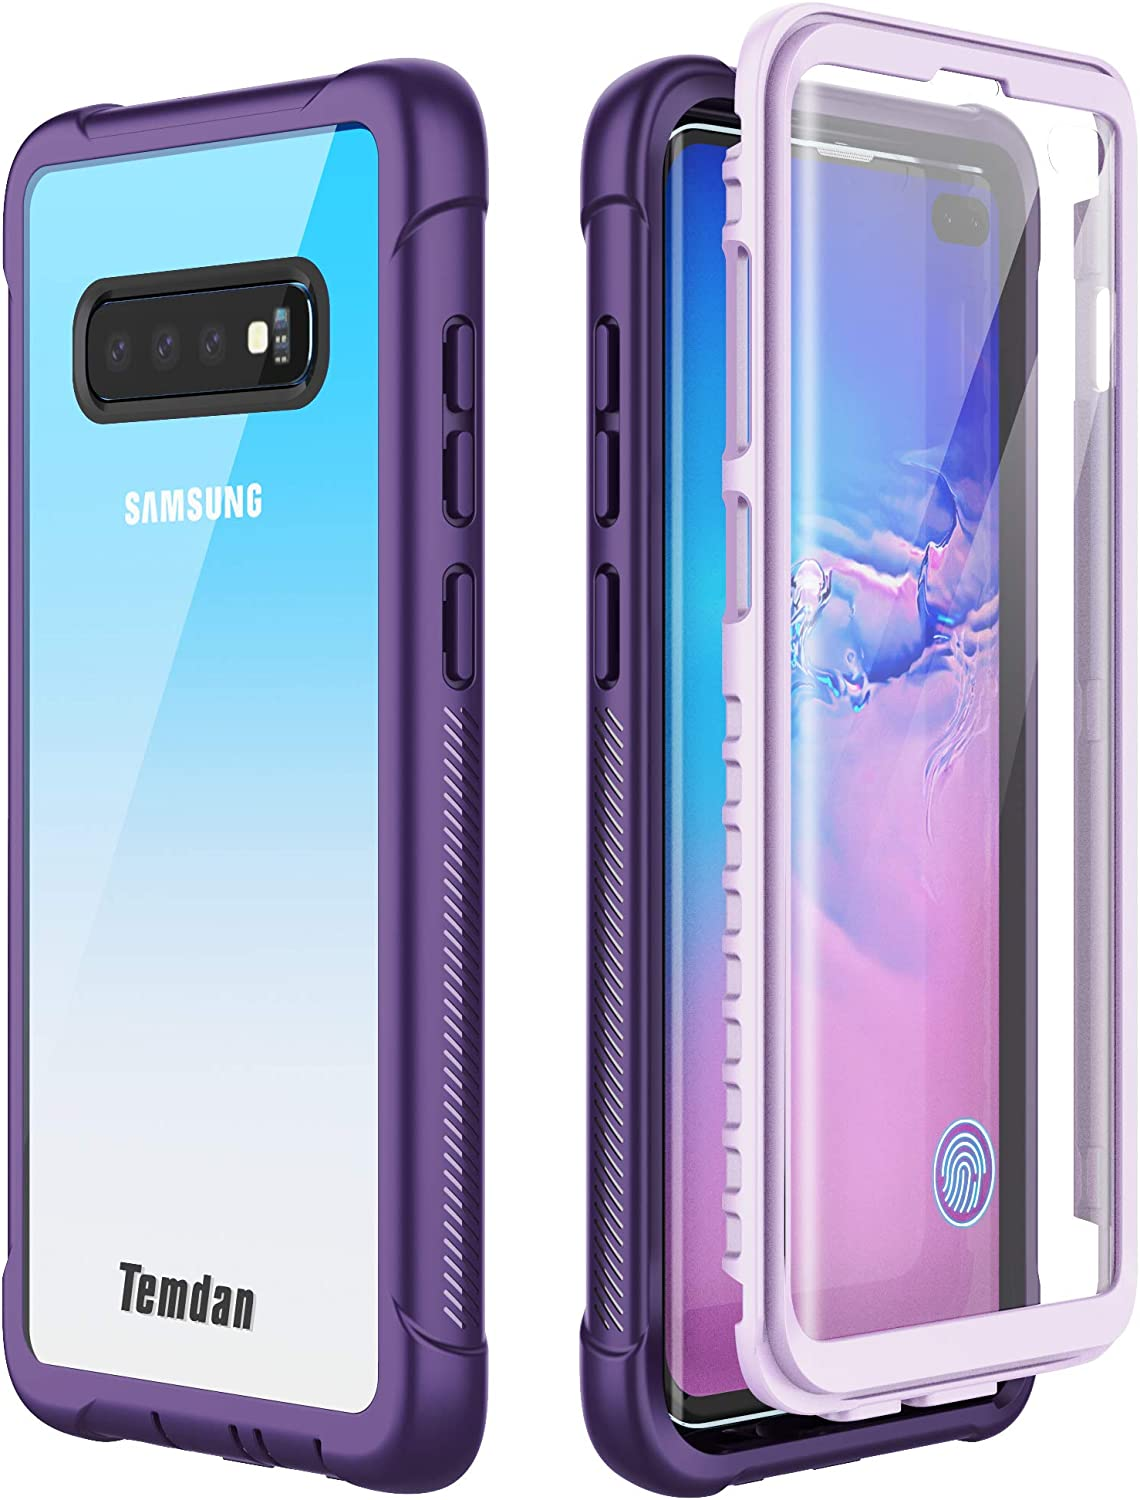 Samsung Galaxy S10 Plus Case,Temdan Built-in Screen Protector with Fingerprint Hole Full Body Protect Support Wireless Charging,Heavy Duty Dropproof Case for Samsung Galaxy S10 Plus 6.4 inch (Purple)